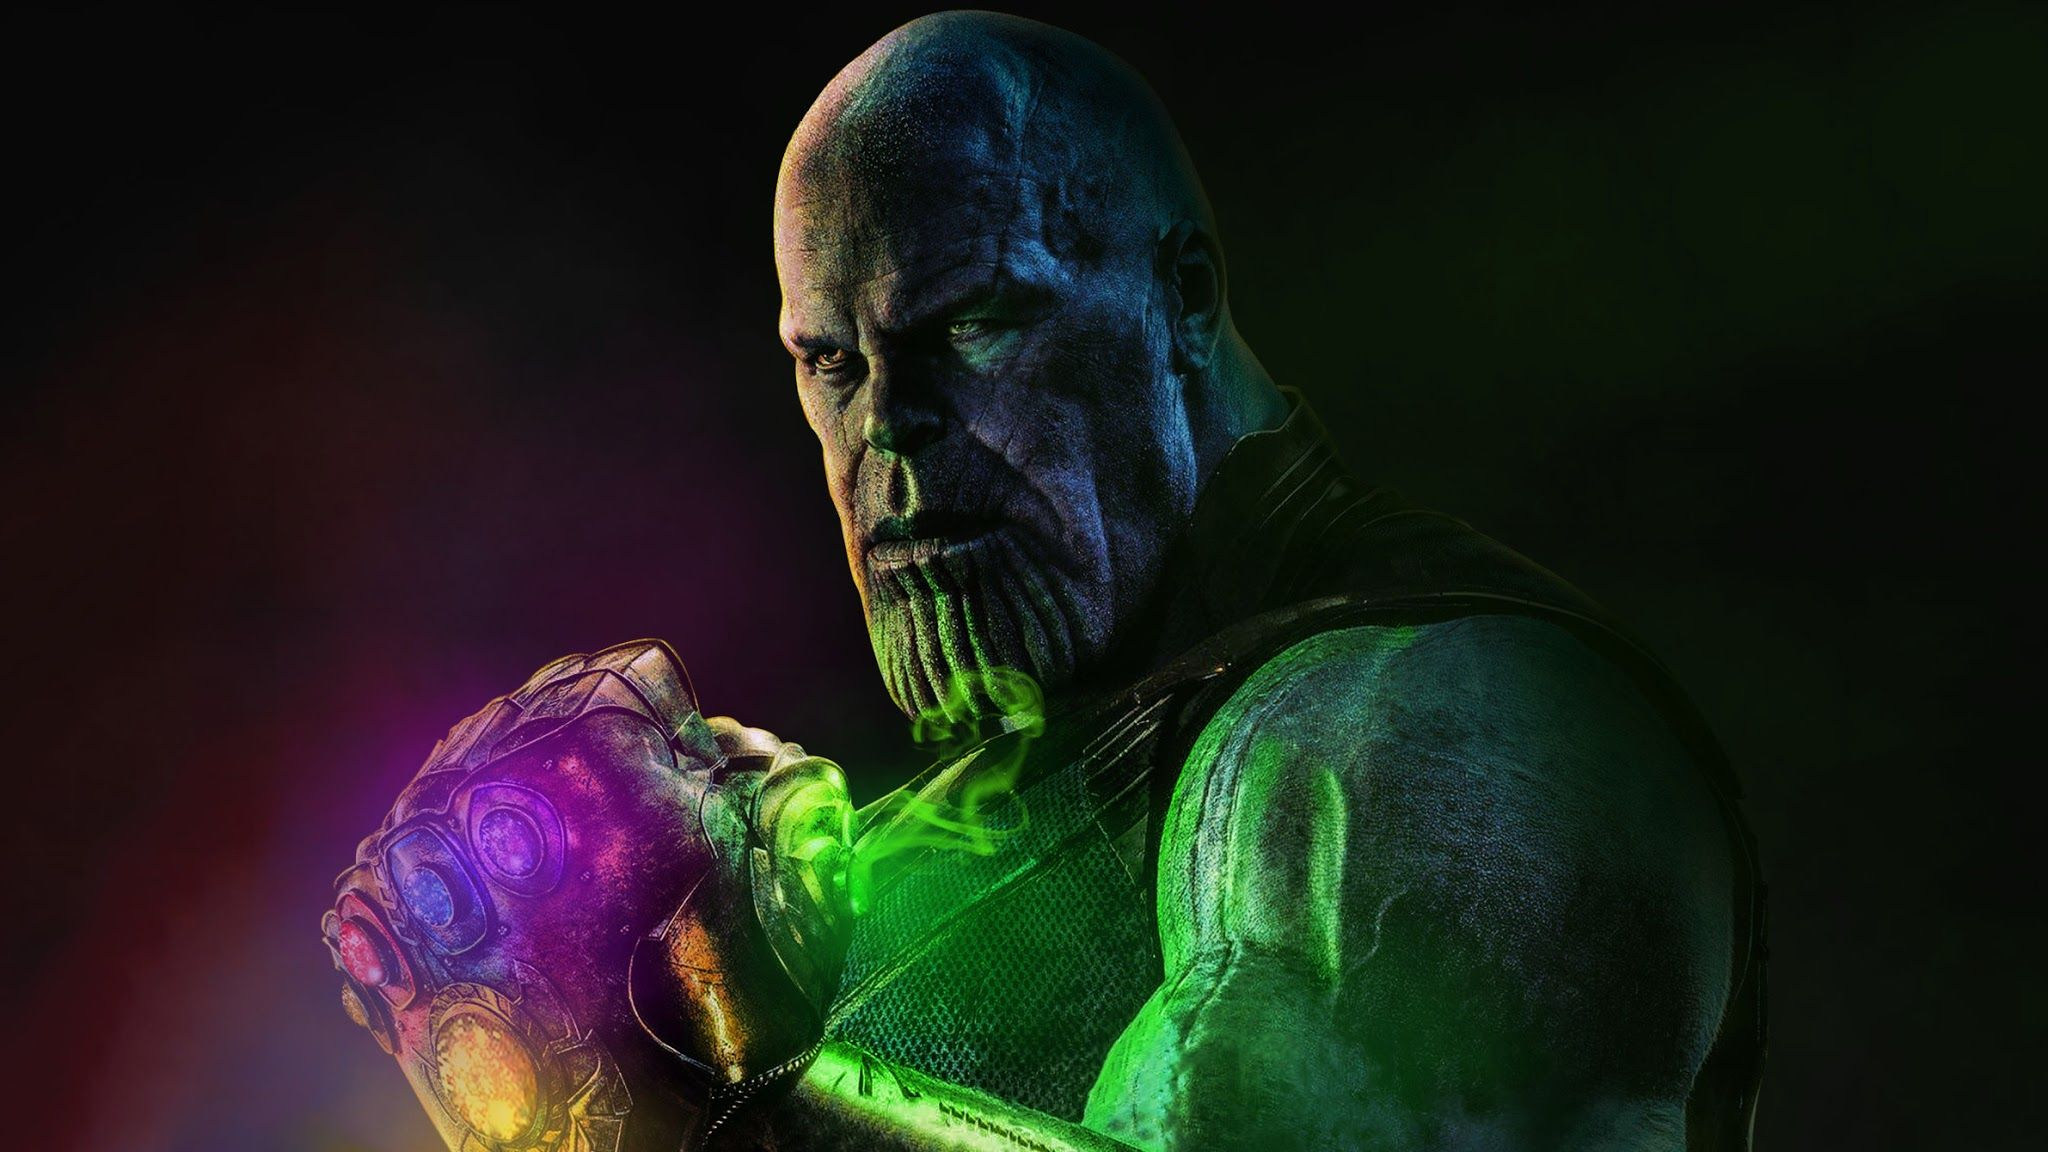 Thanos With Gauntlet Infinity Stones